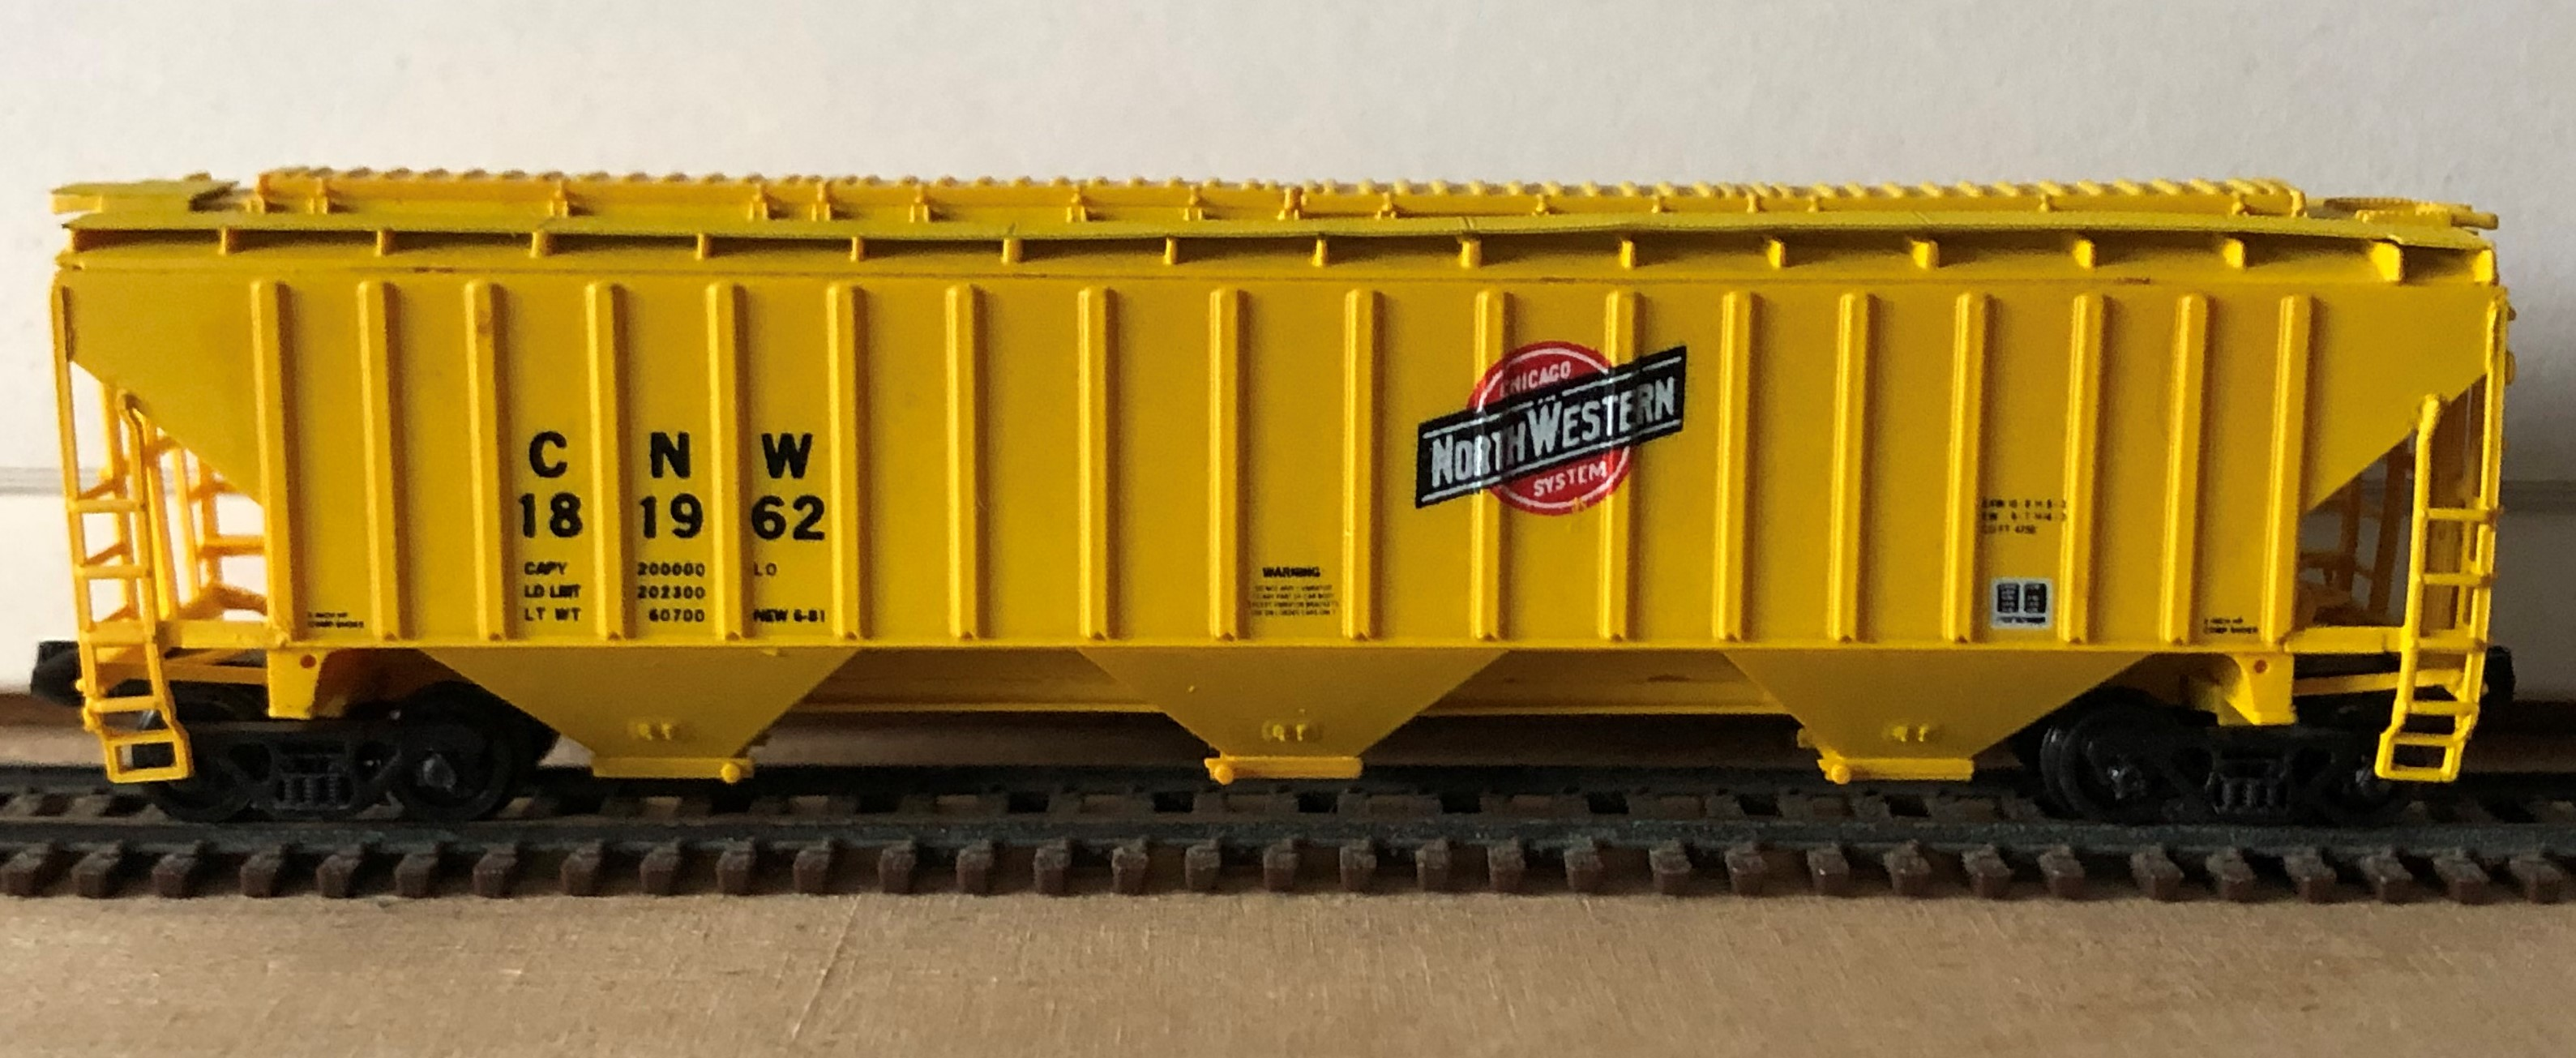 N Scale - Pacific Western Rail Systems - 1022B - Covered Hopper, 3-Bay, Thrall 4750 - Chicago & North Western - 181962